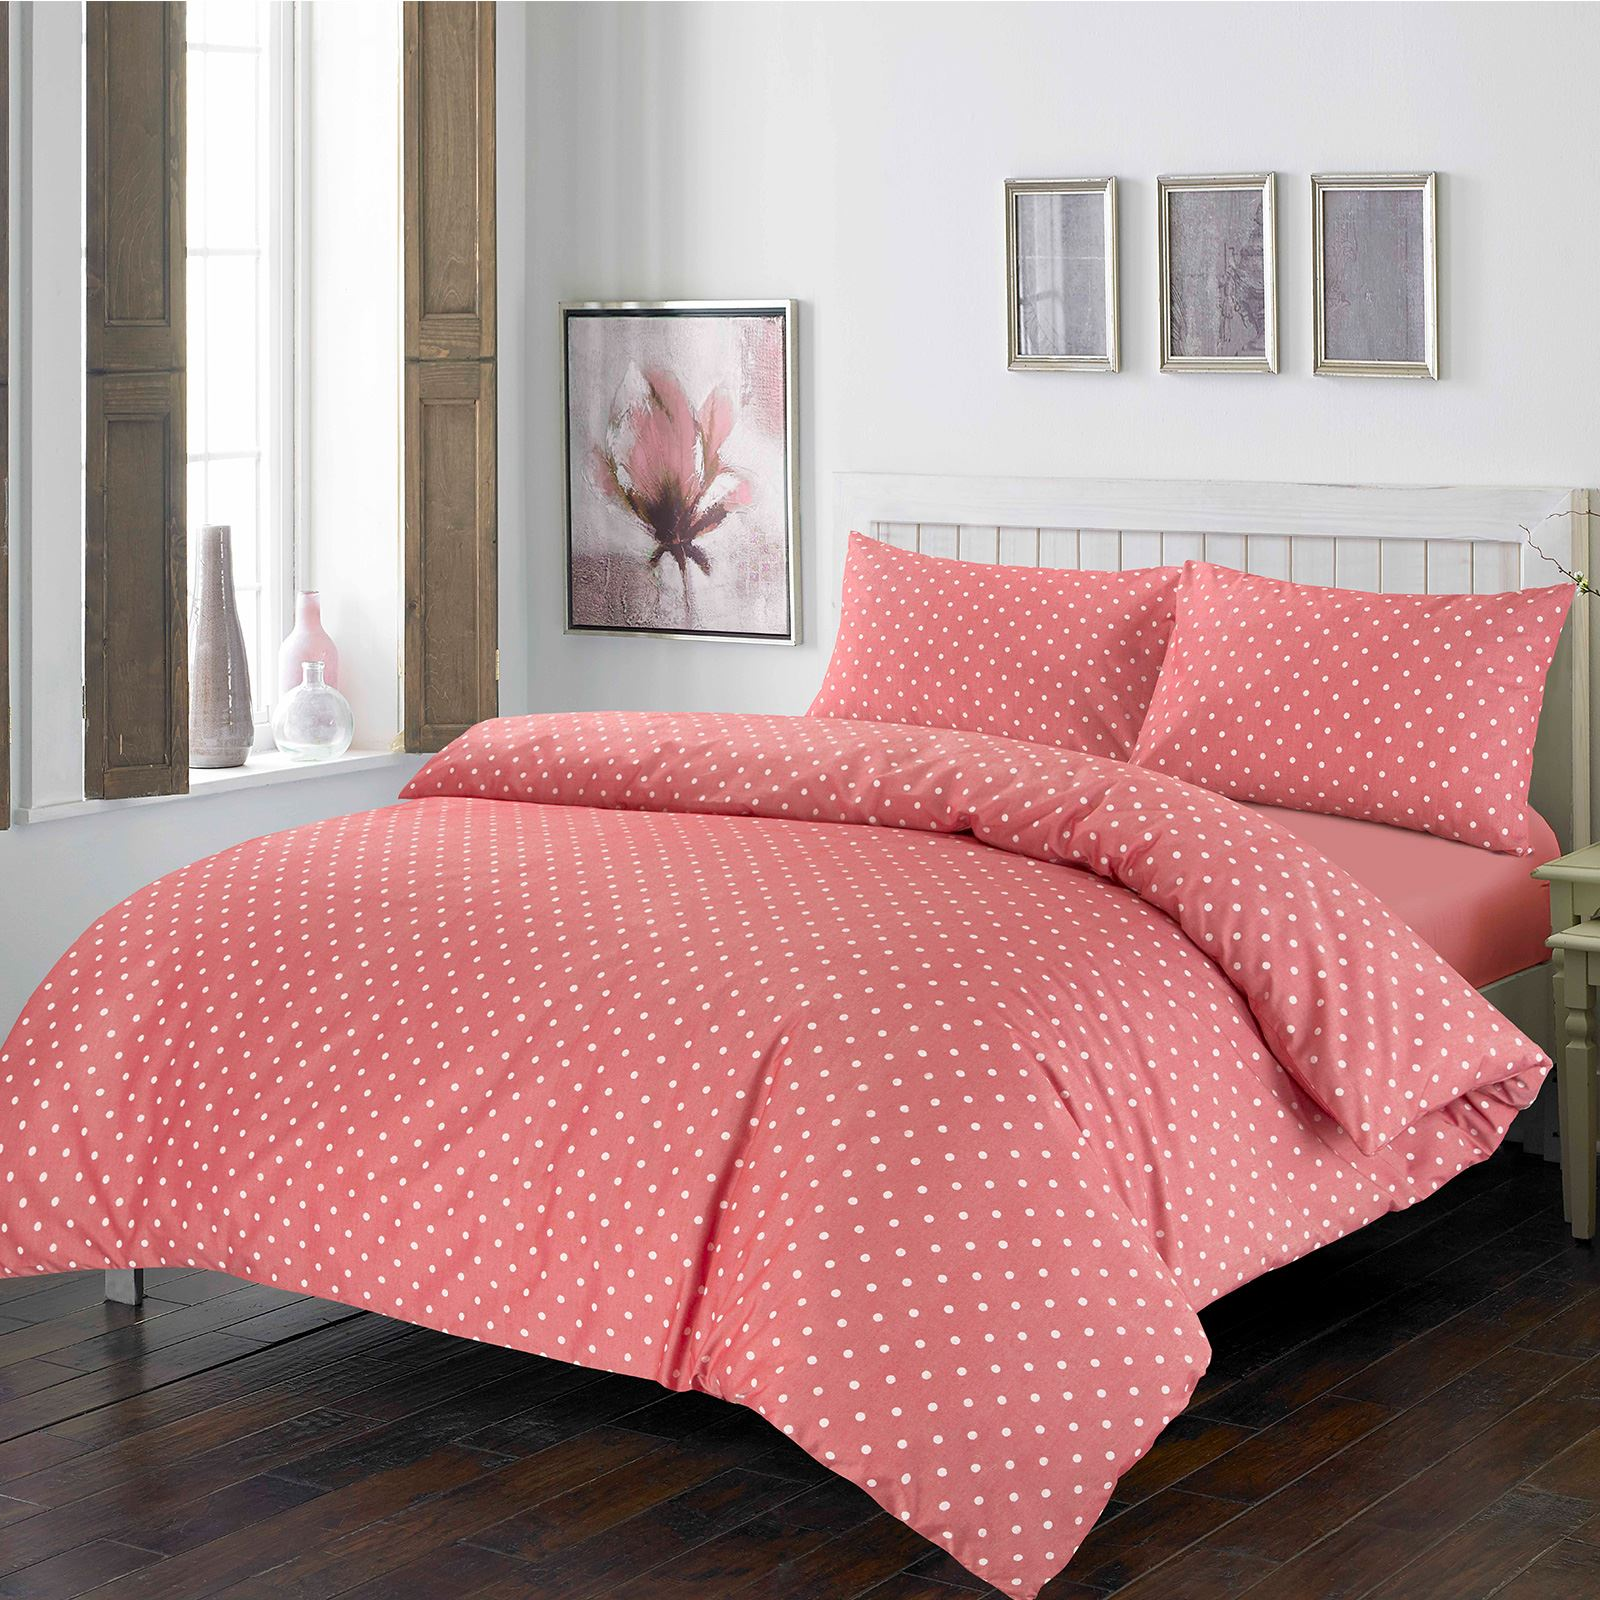 interior duvet in cover covers pink study dot and white polka interesting room new ideas concept